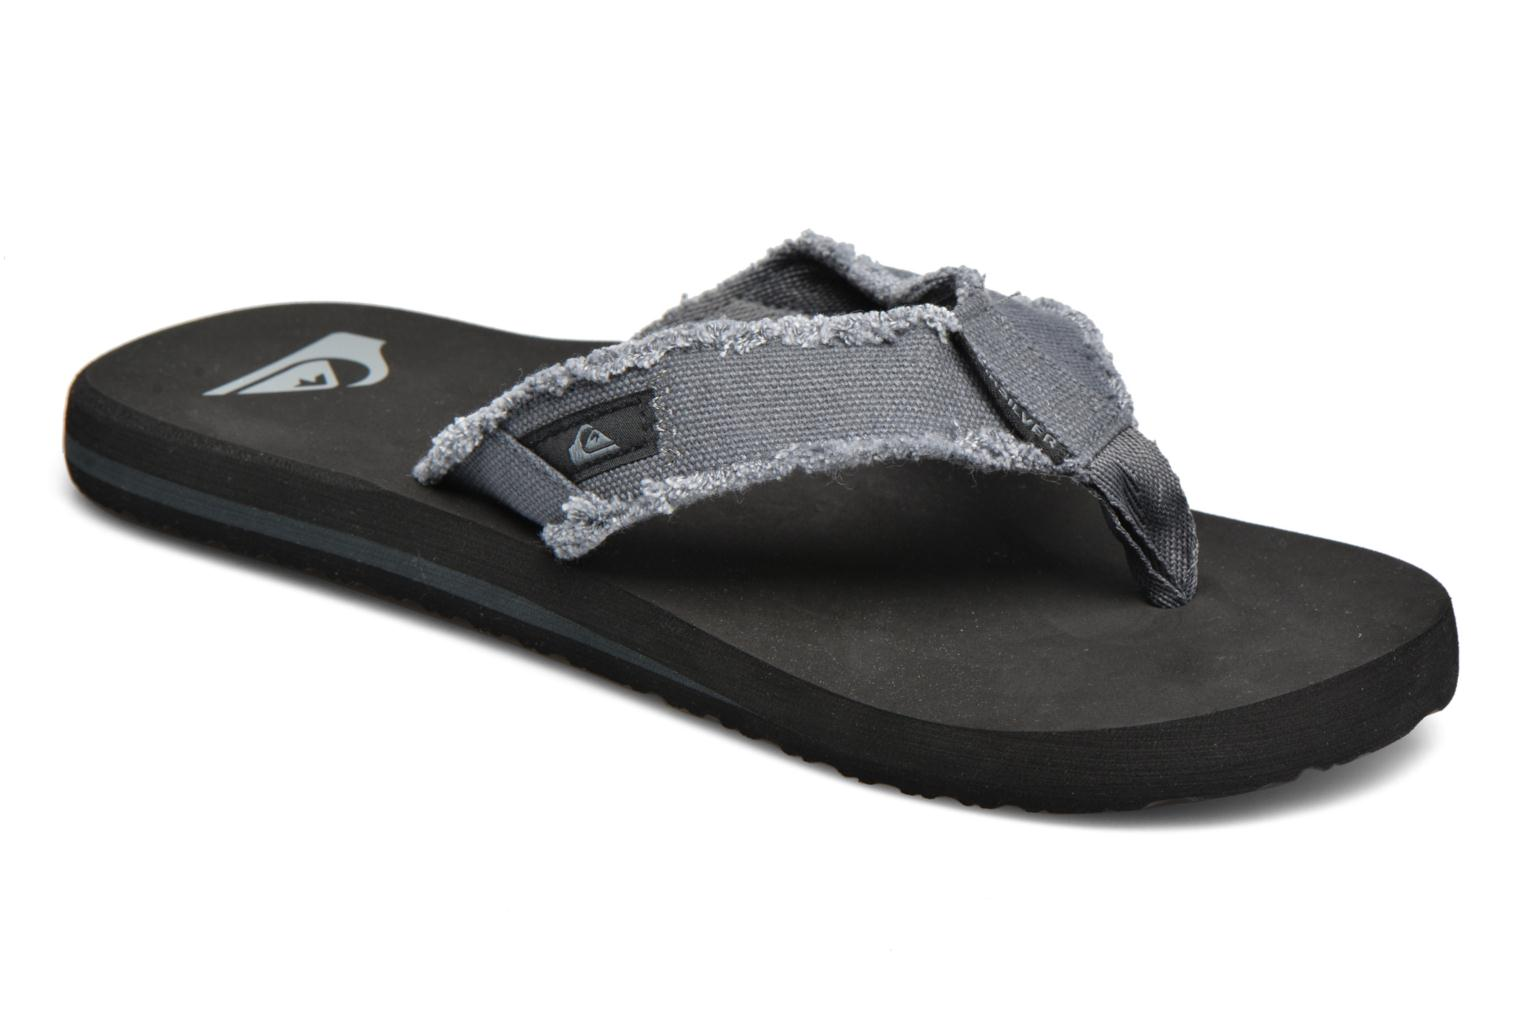 Monkey abyss 2 Grey/black/brown